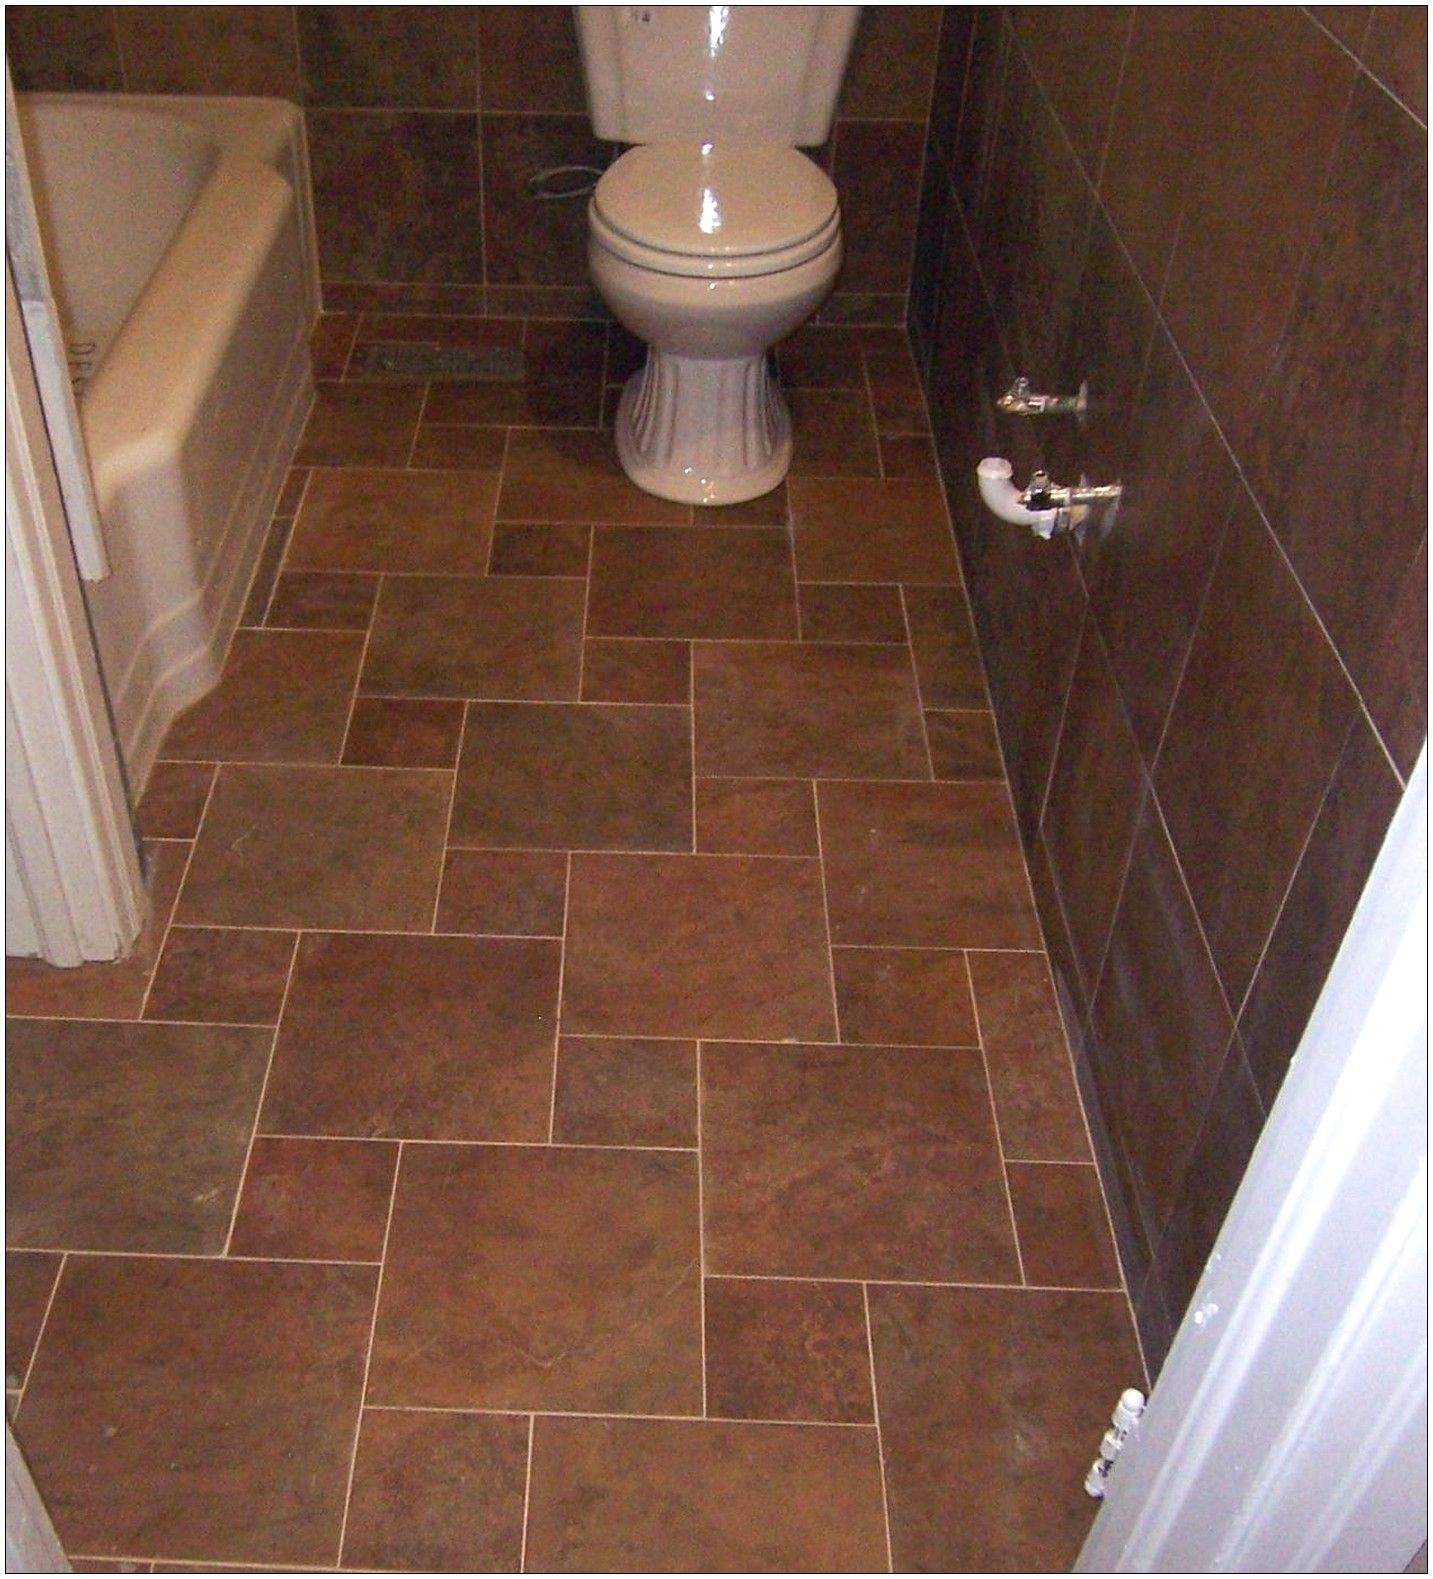 Bathroom And Kitchen Flooring Small Bathroom Floor Tile Designs Bathroom Floor Tile Patterns